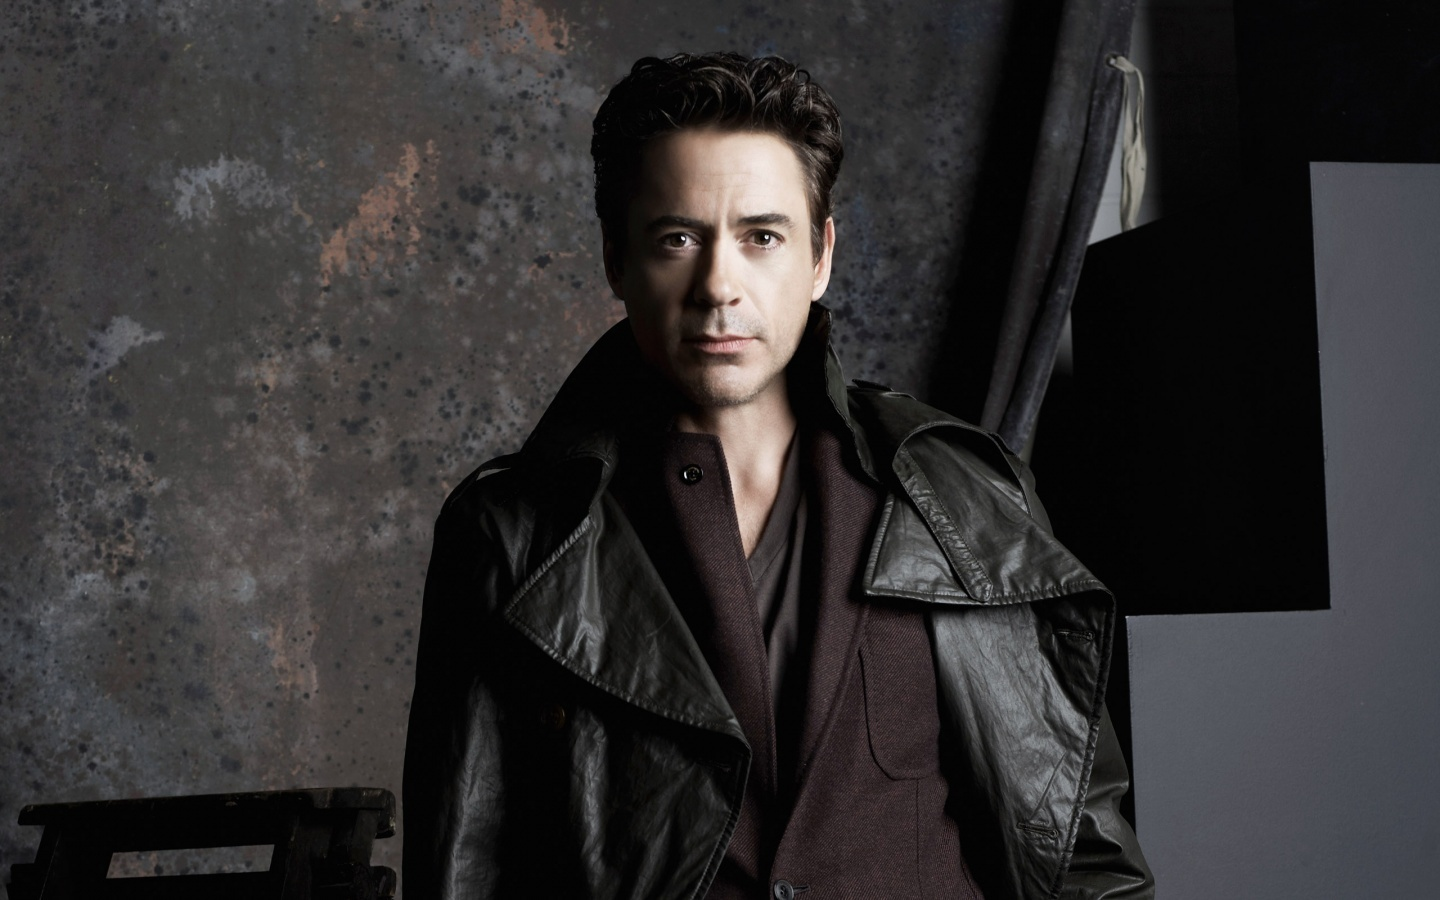 http://1.bp.blogspot.com/-f2JWz7mn9So/UBg4nfZgamI/AAAAAAAACjY/bHJ9-AkeGp8/s1600/Robert_Downey_Jr_Wallpaper+-=-+007.jpg